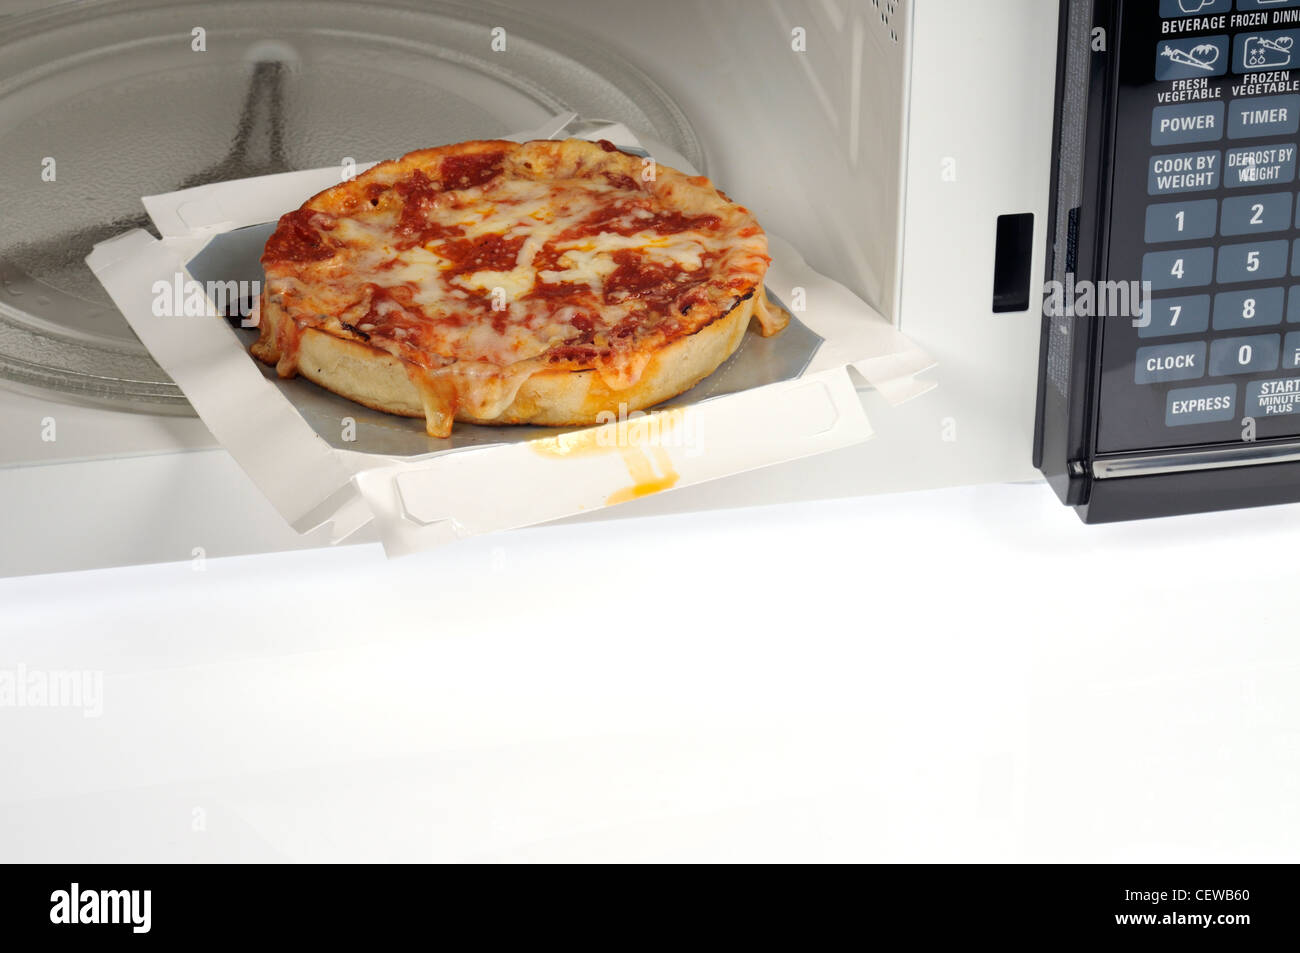 Microwave Cooked Single Deep Dish Pizza With Pepperoni